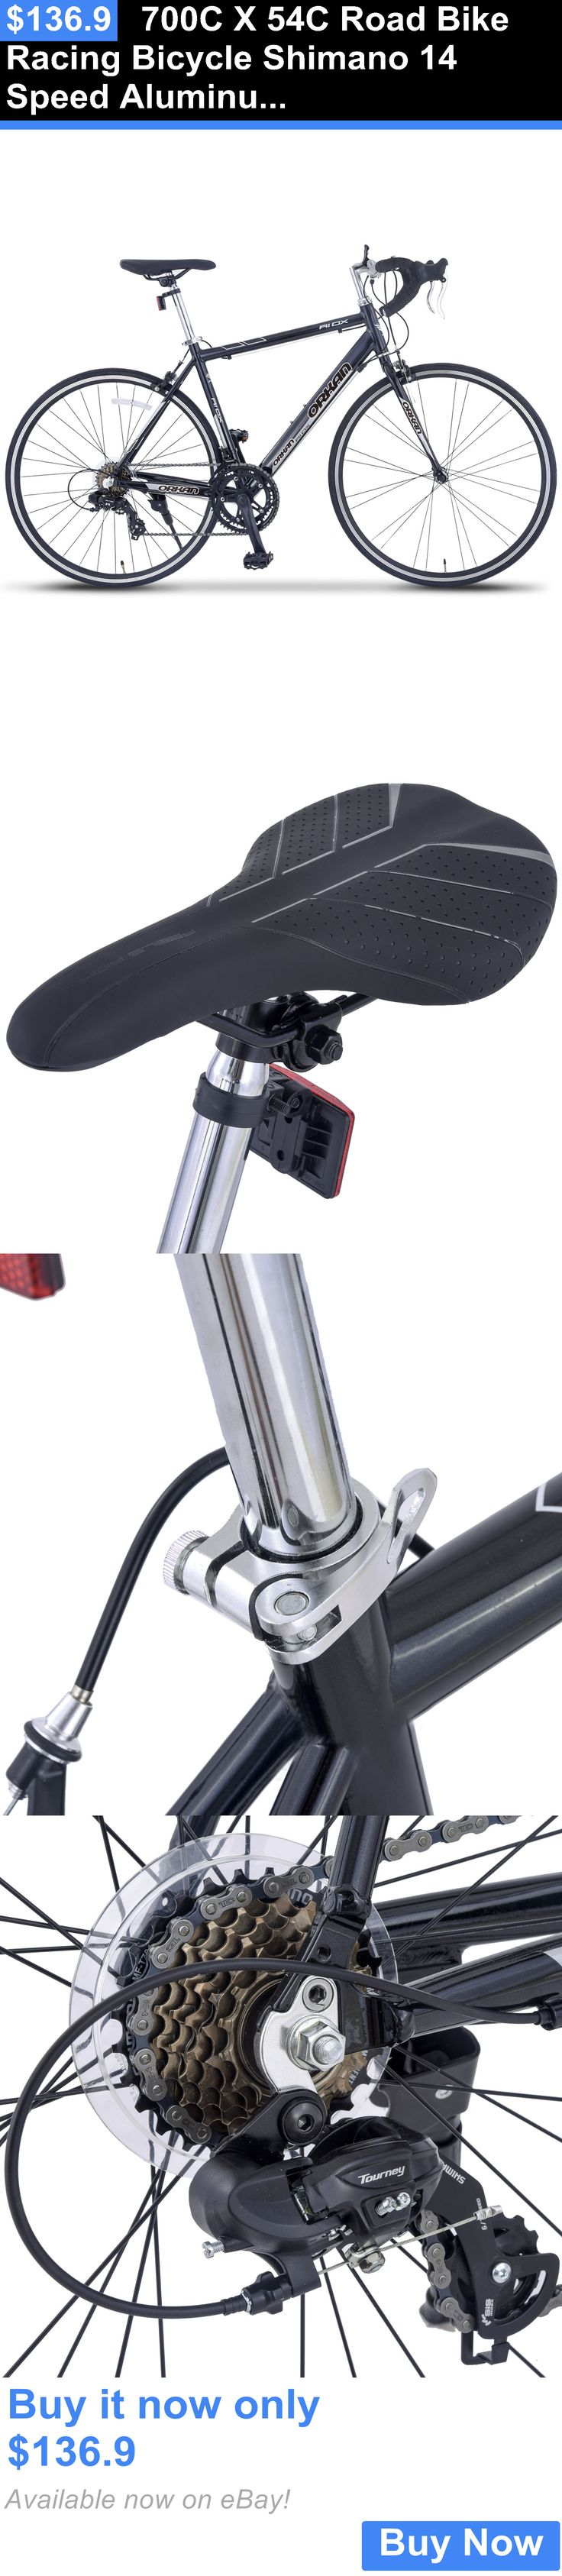 bicycles: 700C X 54C Road Bike Racing Bicycle Shimano 14 Speed Aluminum Frame Steel Fork BUY IT NOW ONLY: $136.9